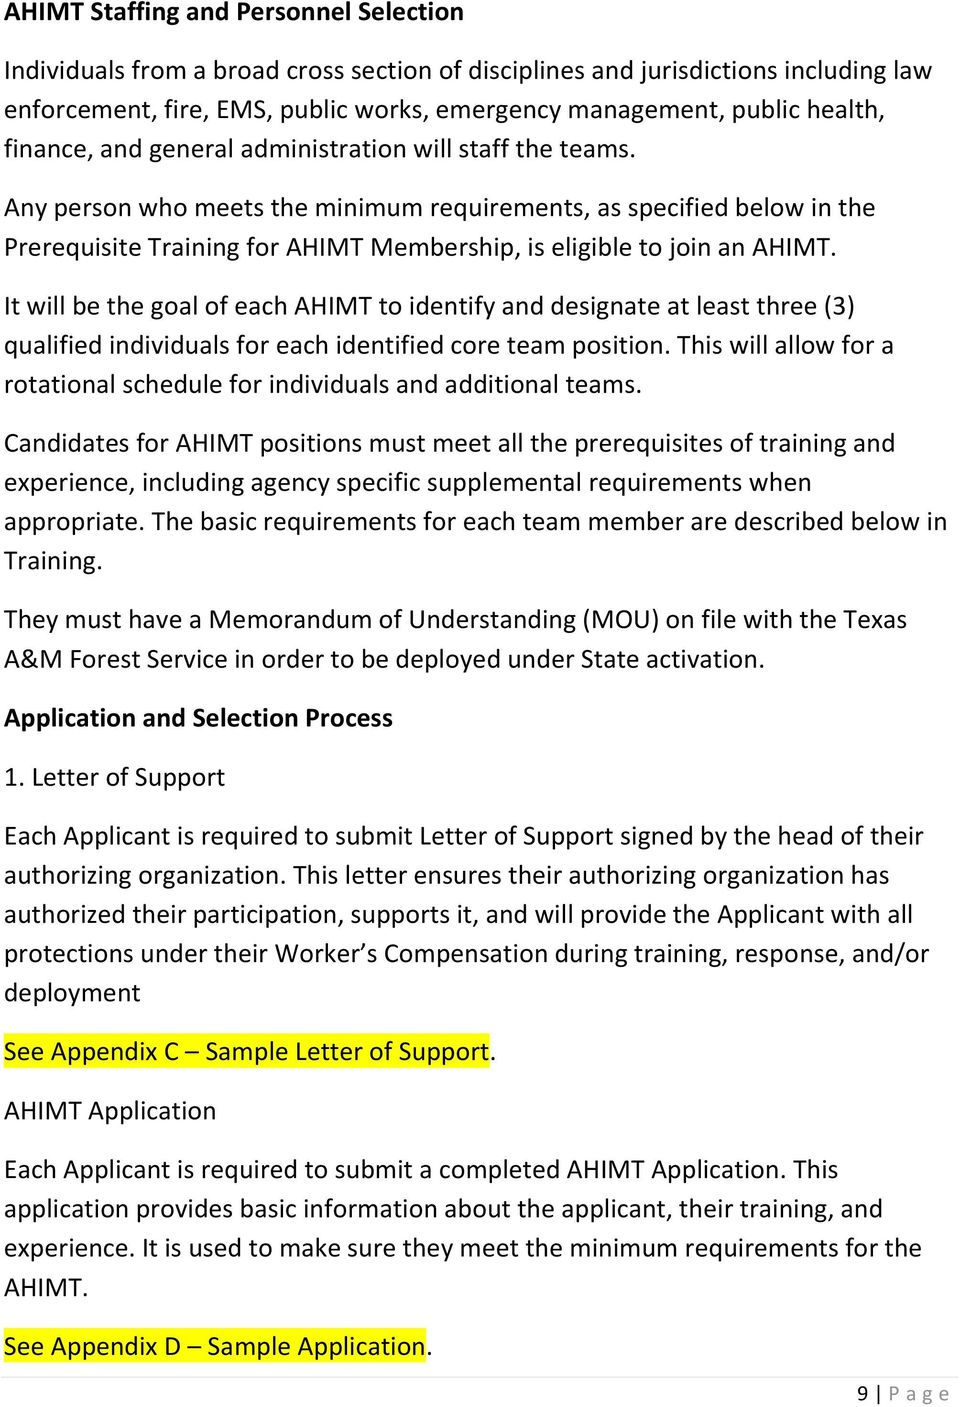 Any person who meets the minimum requirements, as specified below in the Prerequisite Training for AHIMT Membership, is eligible to join an AHIMT.